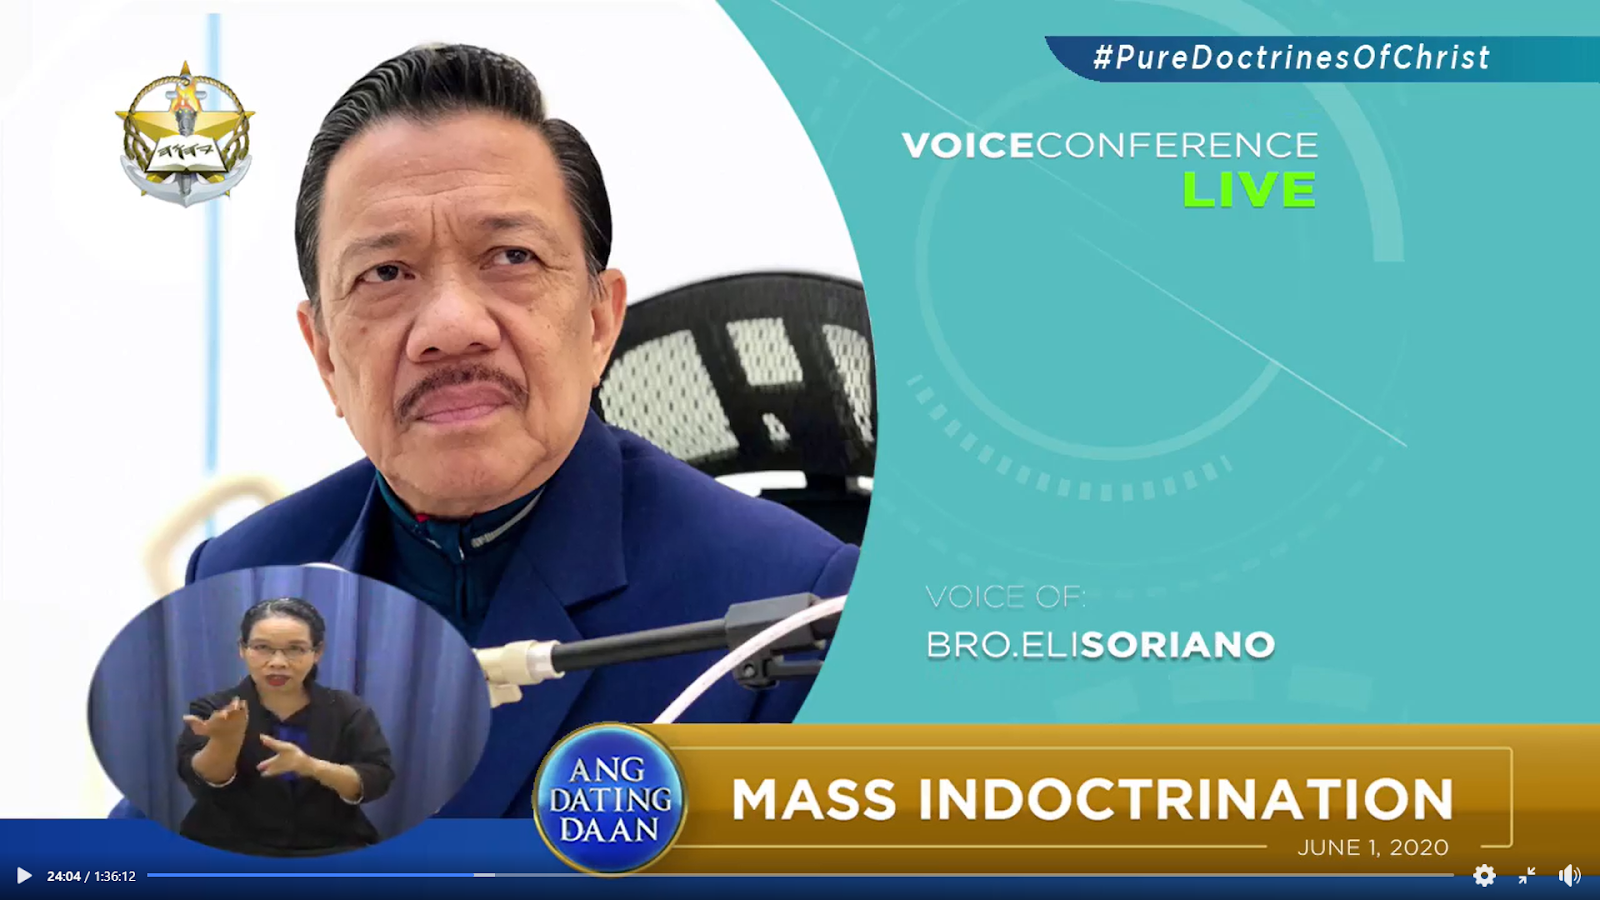 Bro Eliseo Soriano hosting Ang Dating Daan Live Mass Indoctrination through one of Ang Dating Daan's voice conferencing channels Qoneq